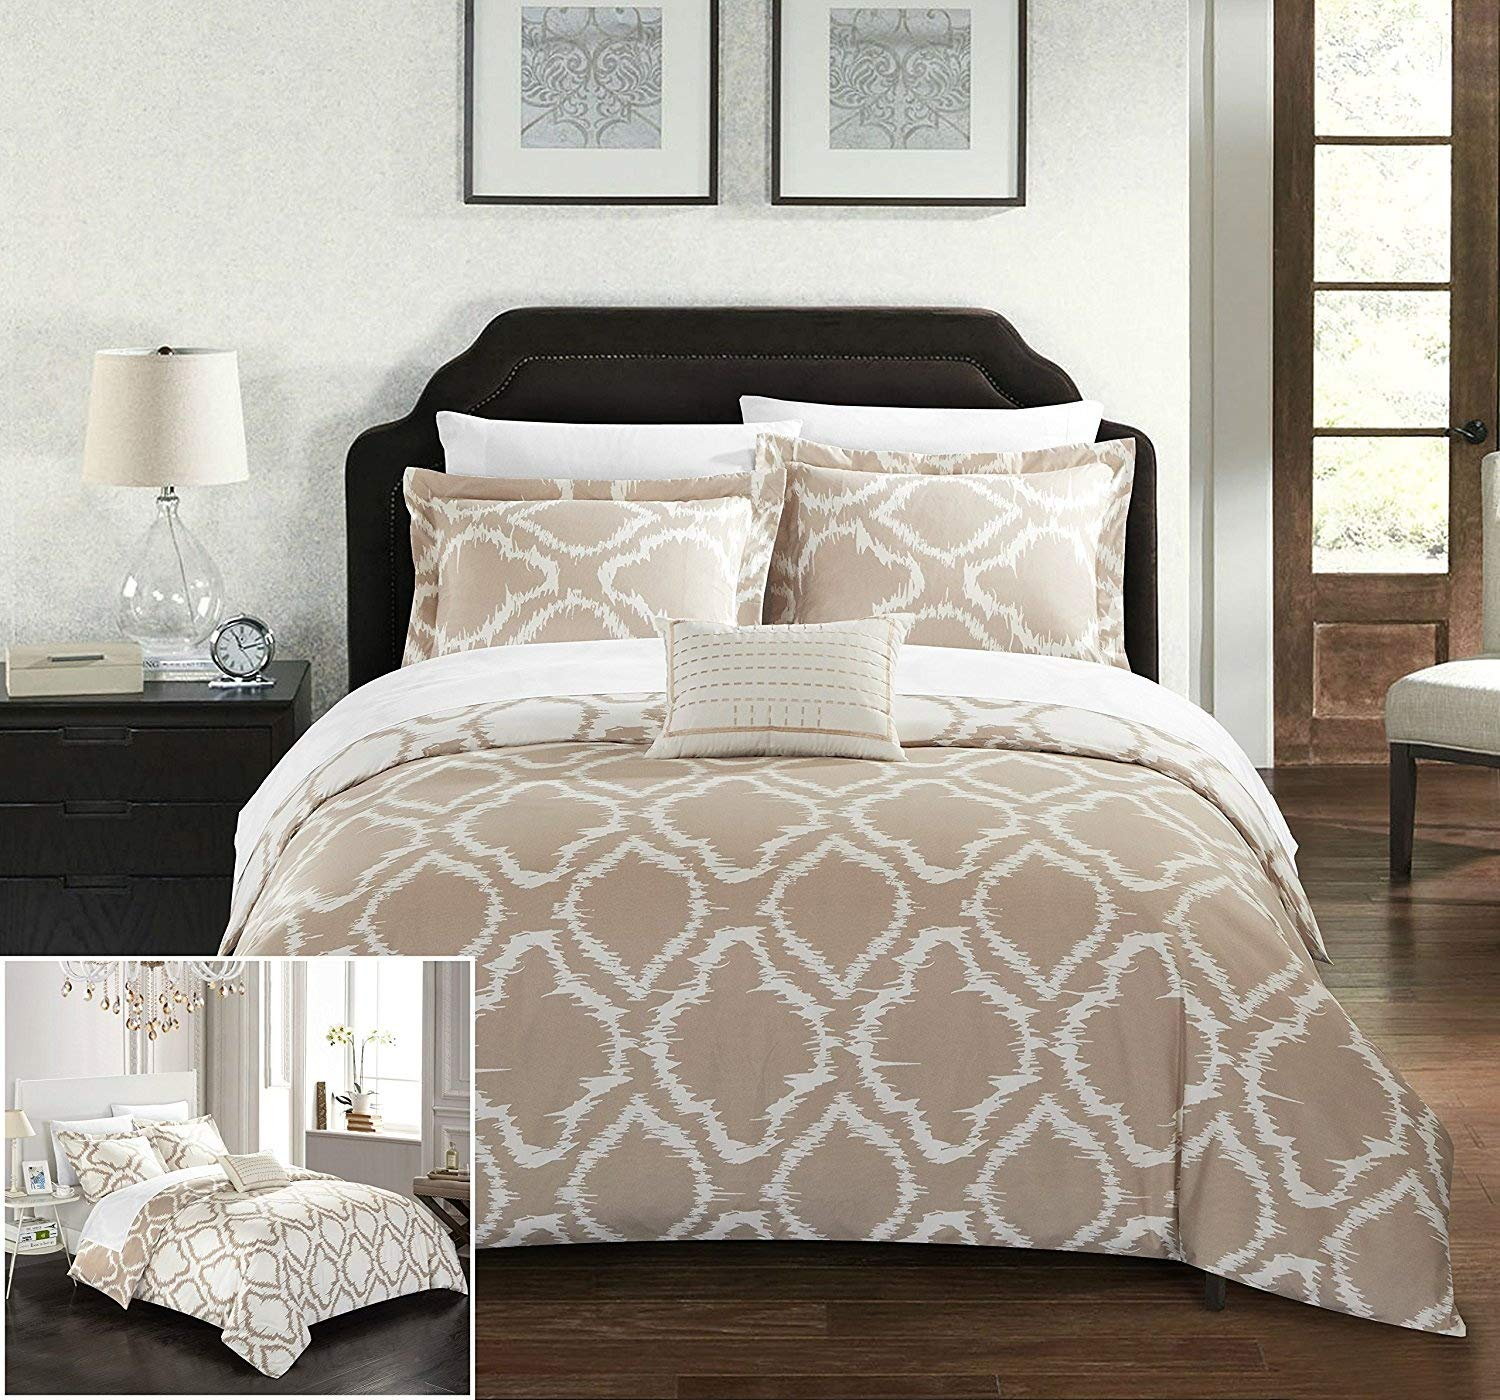 Chic Home 4 Piece Juniper Reversible Two-Tone Ikat Diamond Geometric Pattern Print Technique King Duvet Cover Set Beige